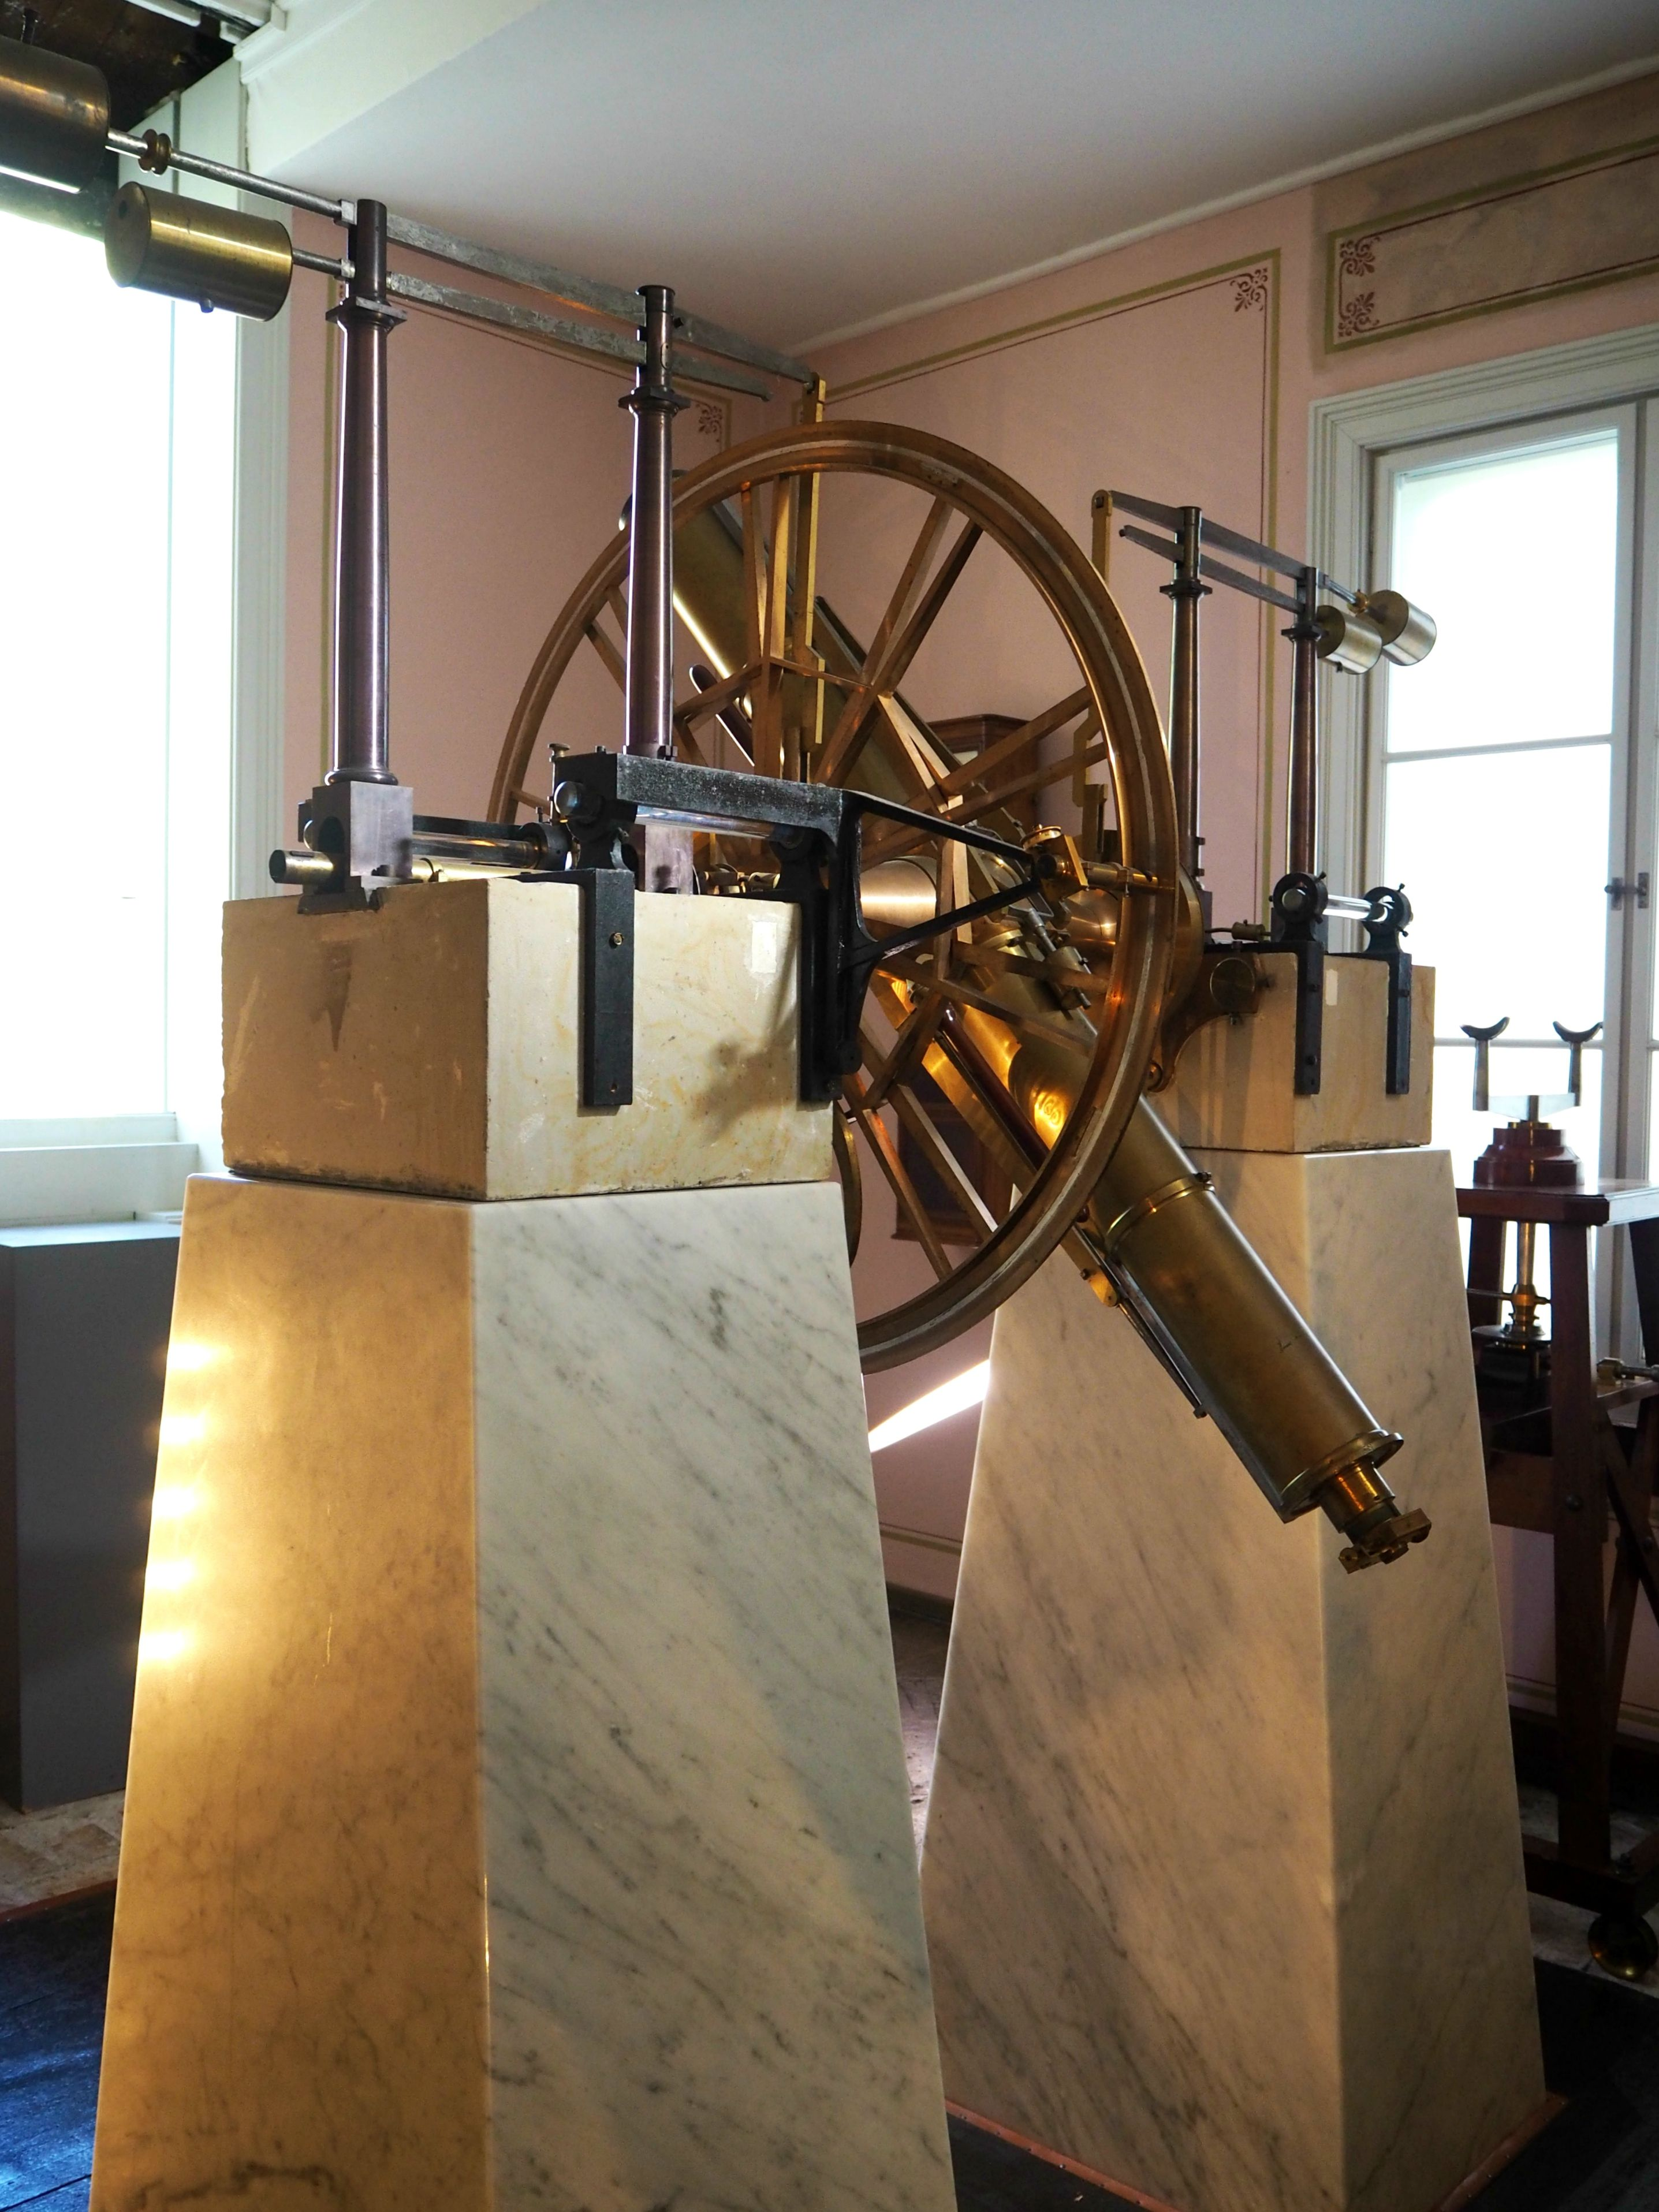 The Meridian Room at the University of Oslo's Observatory